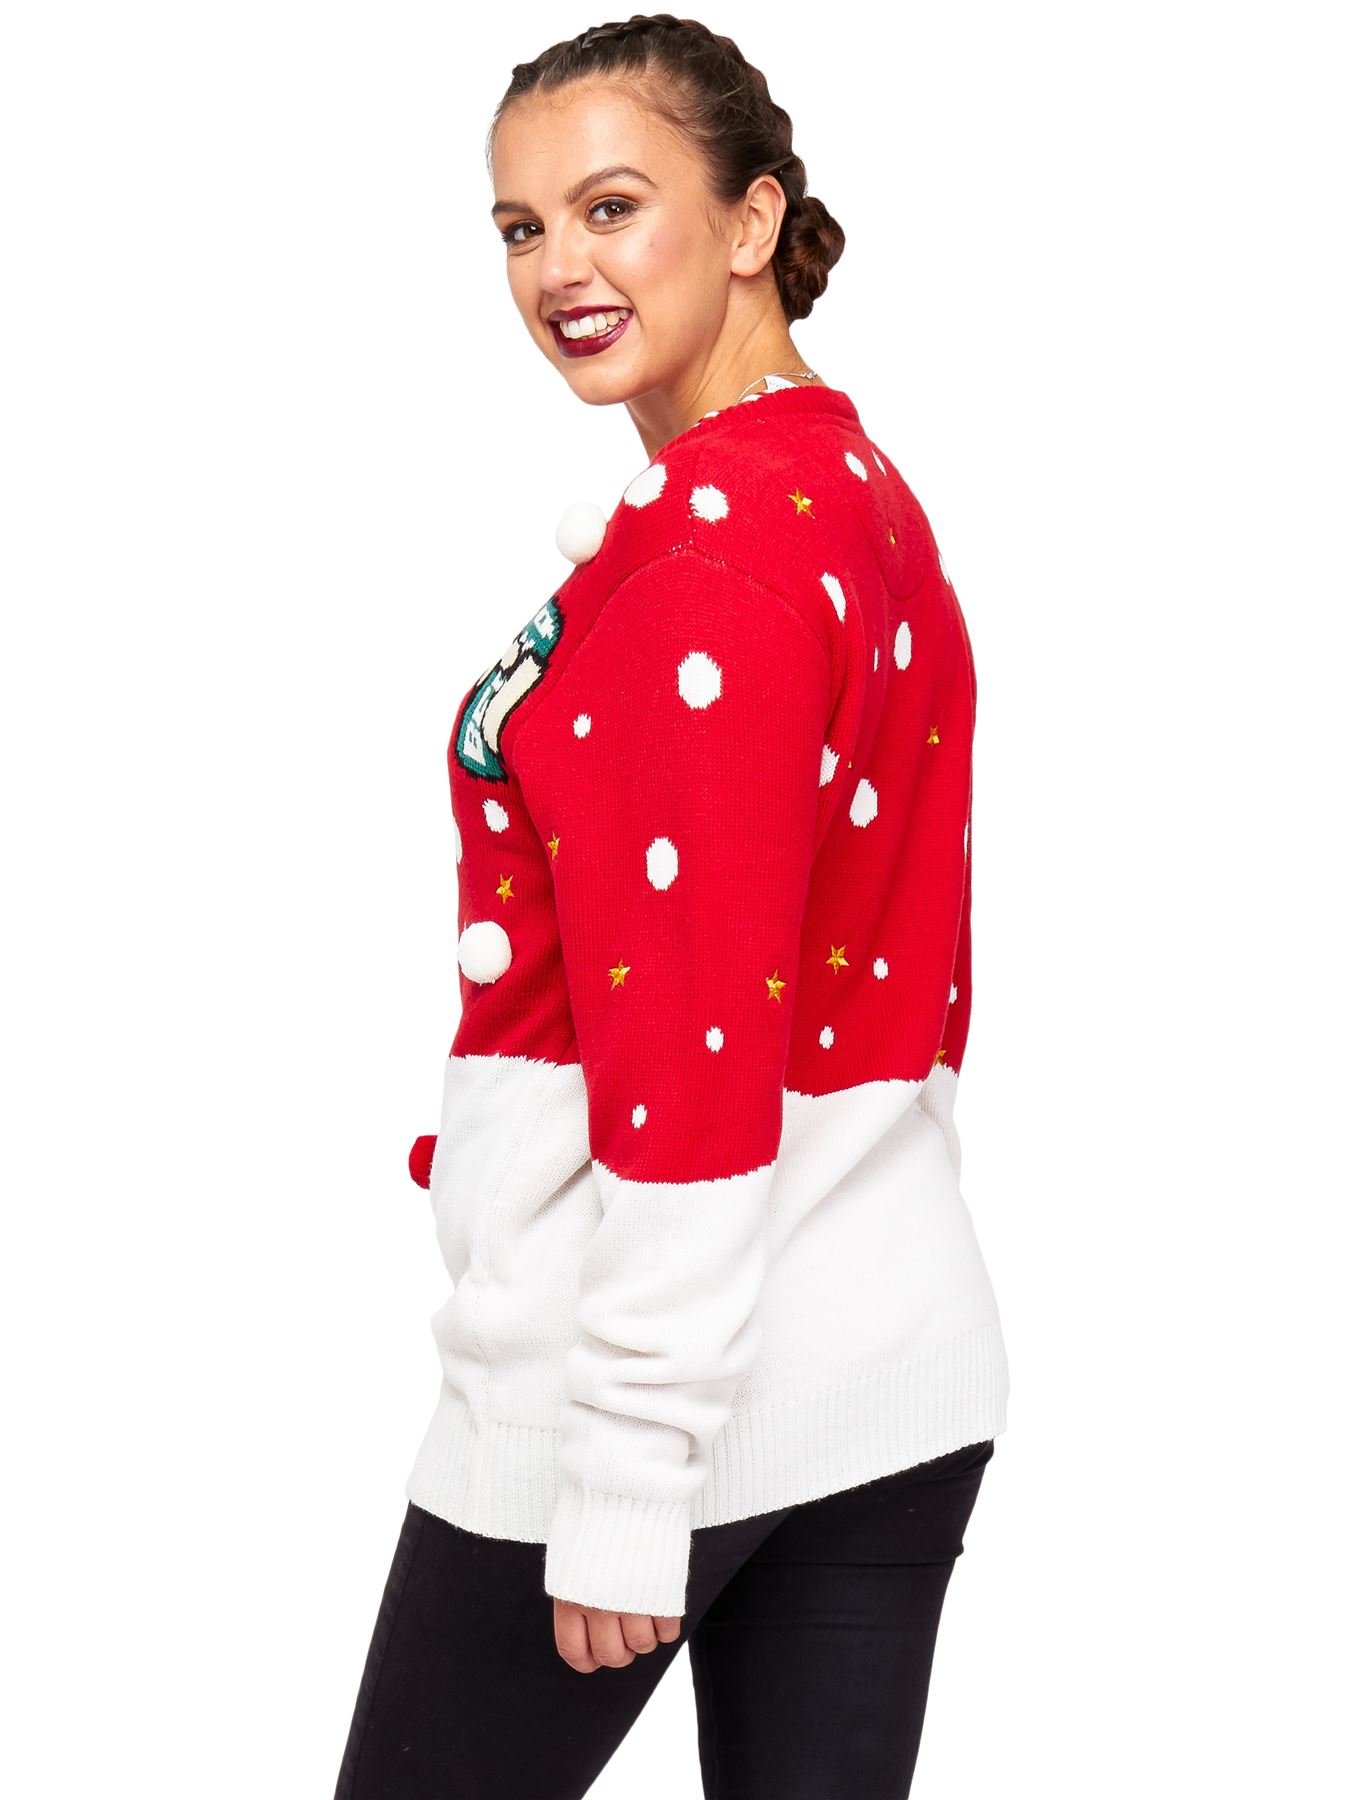 Unisex Christmas Jumper Womens Knitted Elf  Safety 3d Graphic Trim Party Sweater